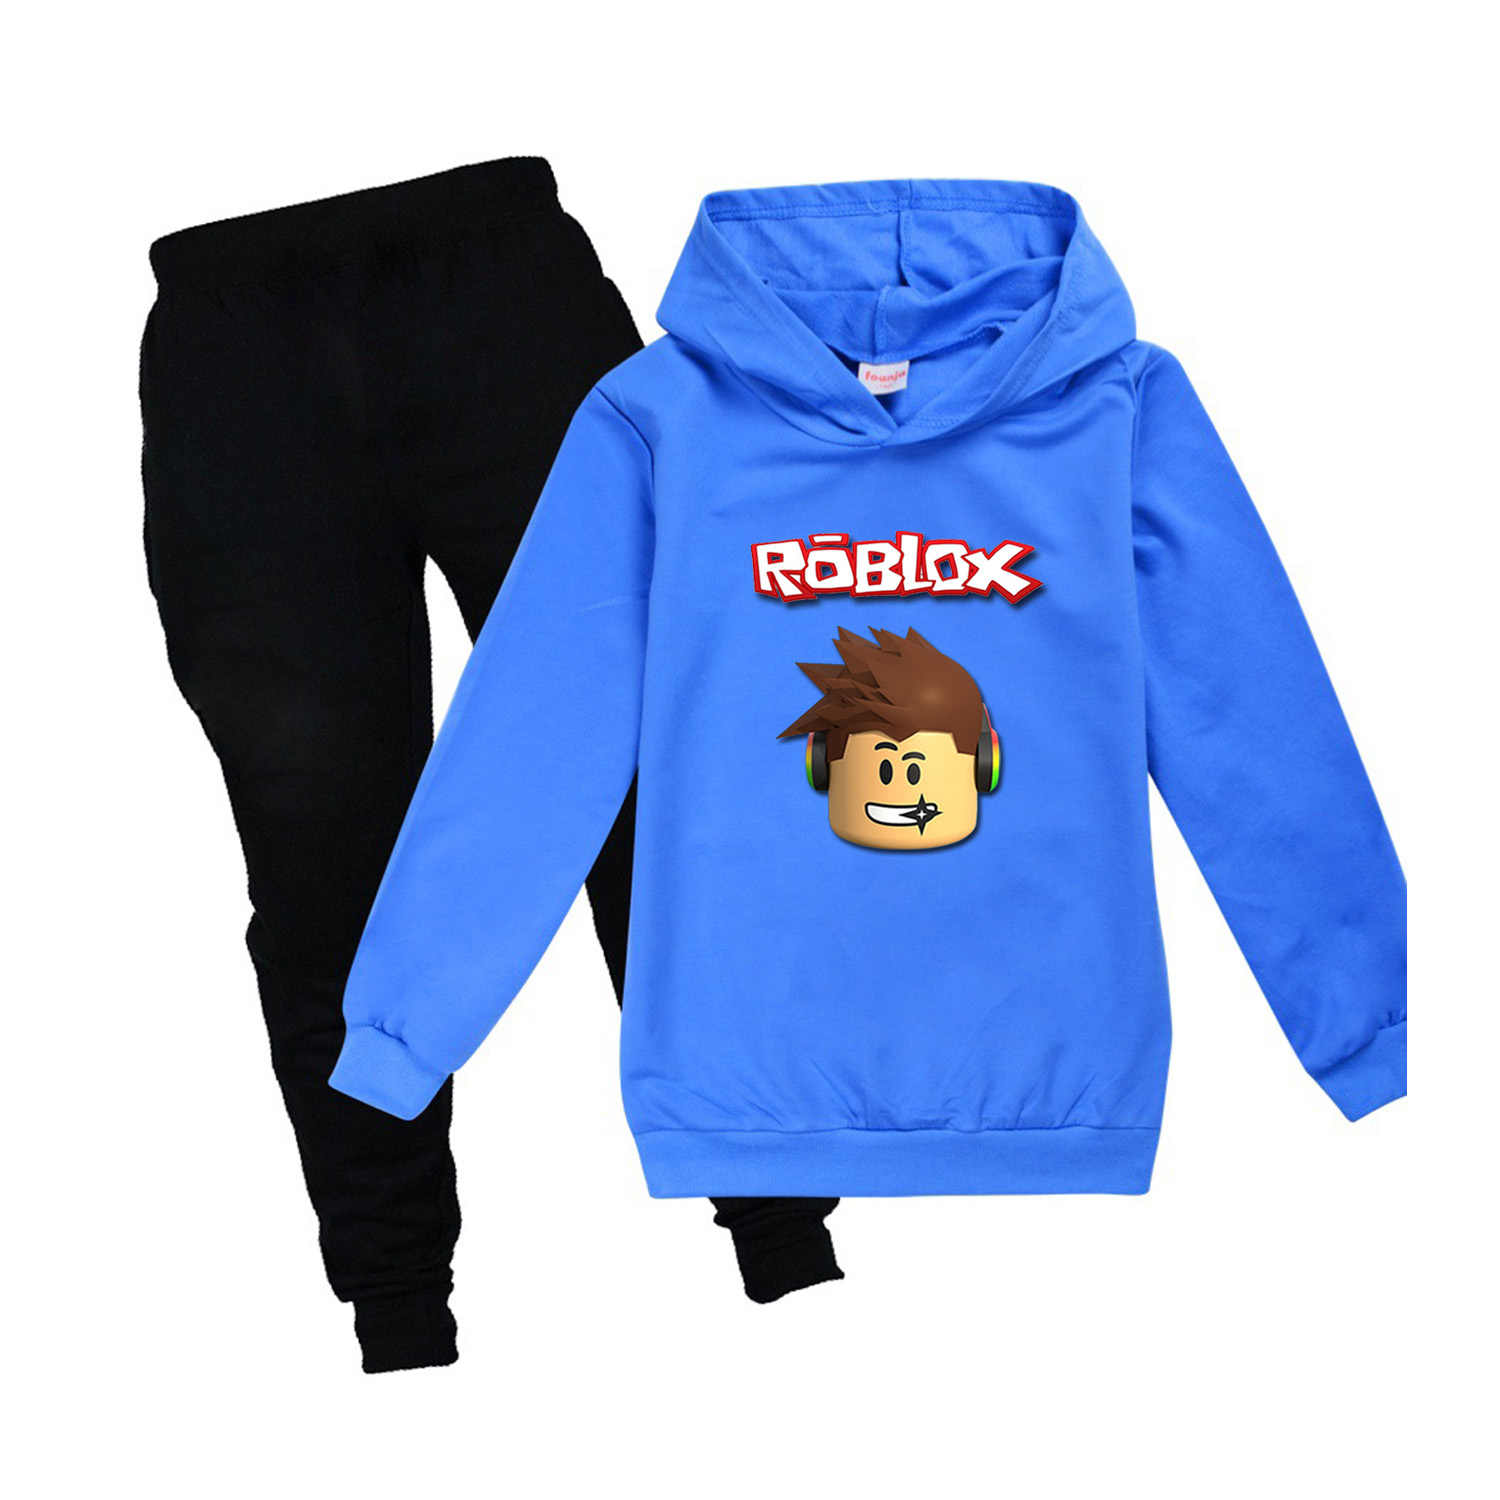 Youth Pullover Hoodie R-oBl-ox Adopt me Sweatpants Suit Hooded Tracksuit Sweatshirt Set for Teen Boys Girls